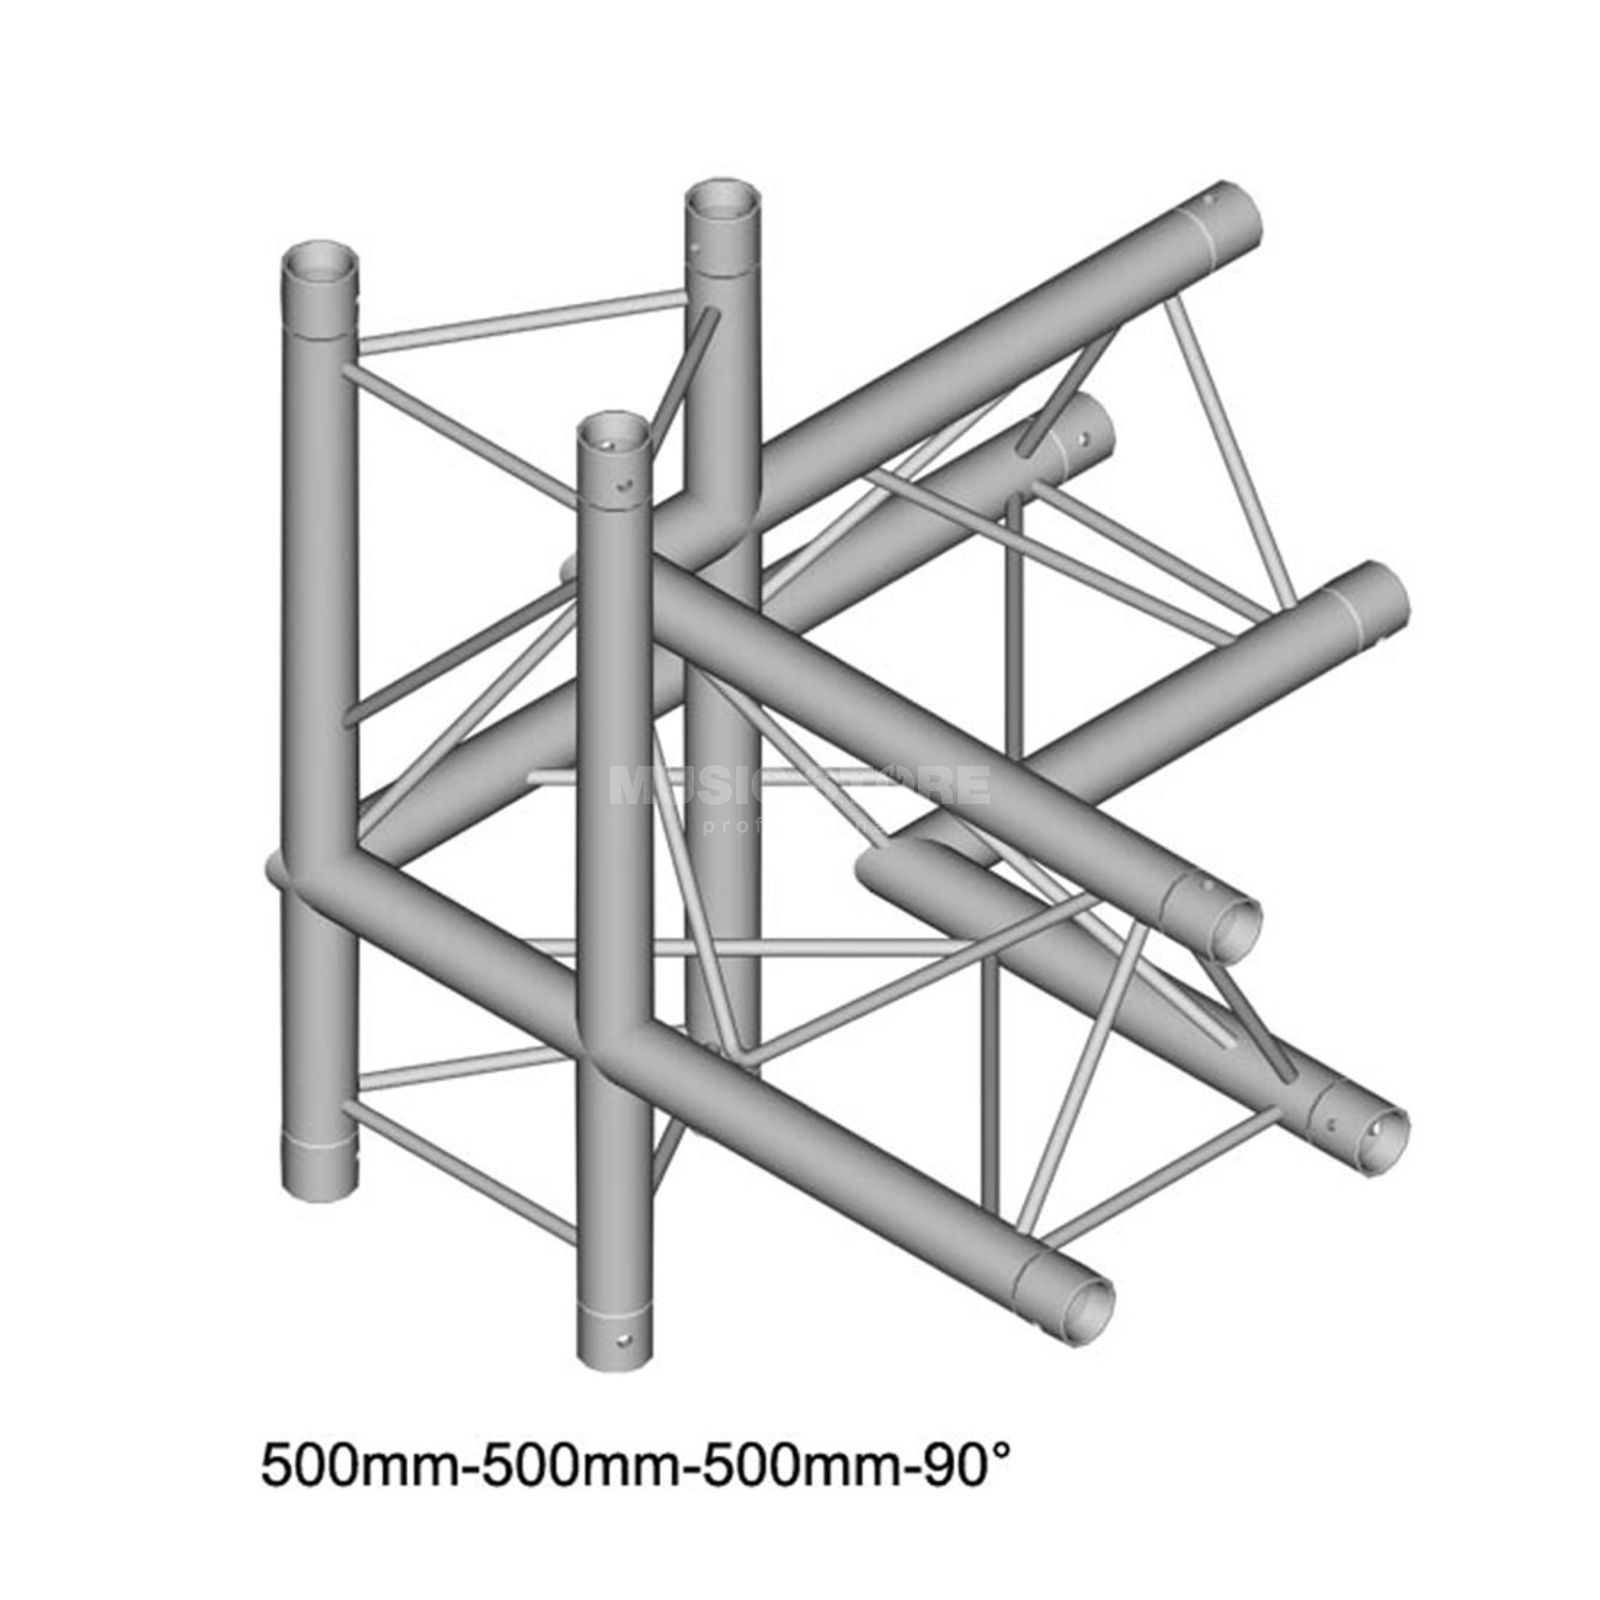 DURATRUSS DT 23 C45-LUD, 3-Point Truss 90° Corner, 4-Way, left Produktbillede